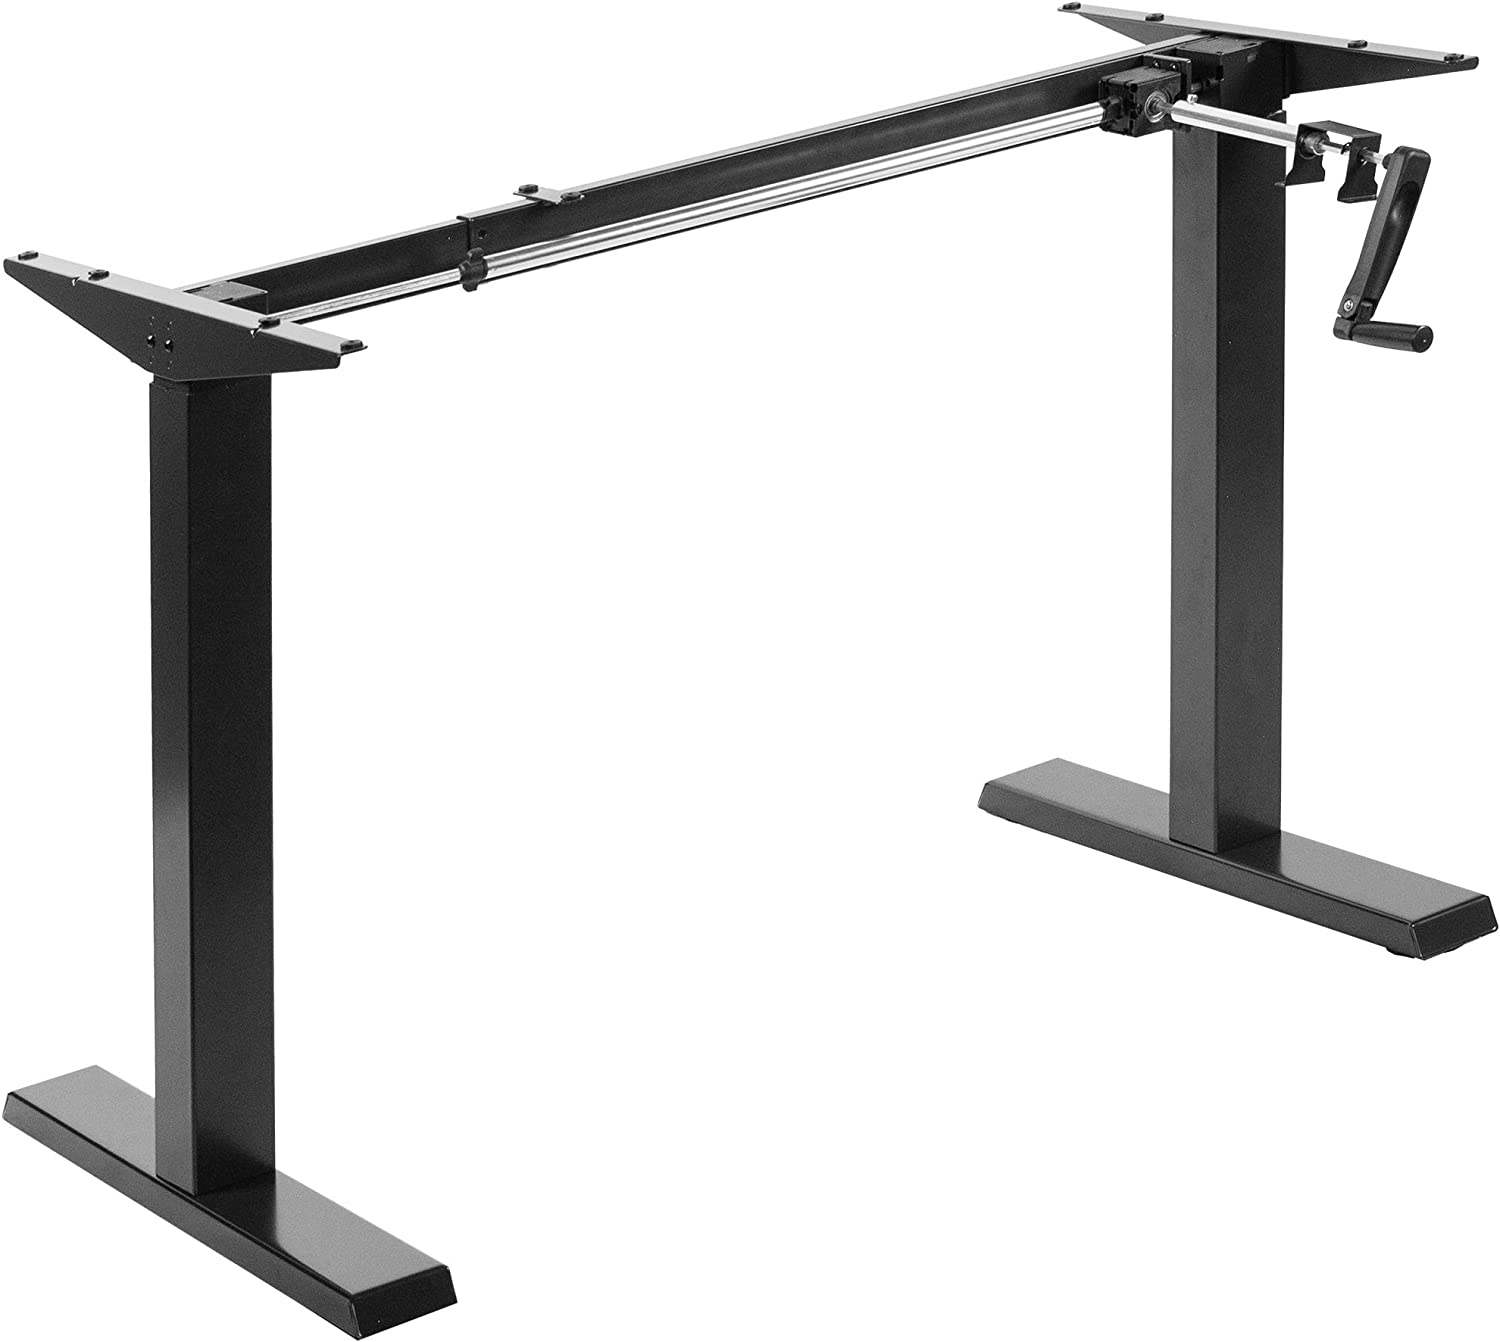 Crank Height Adjustable Desk Frame